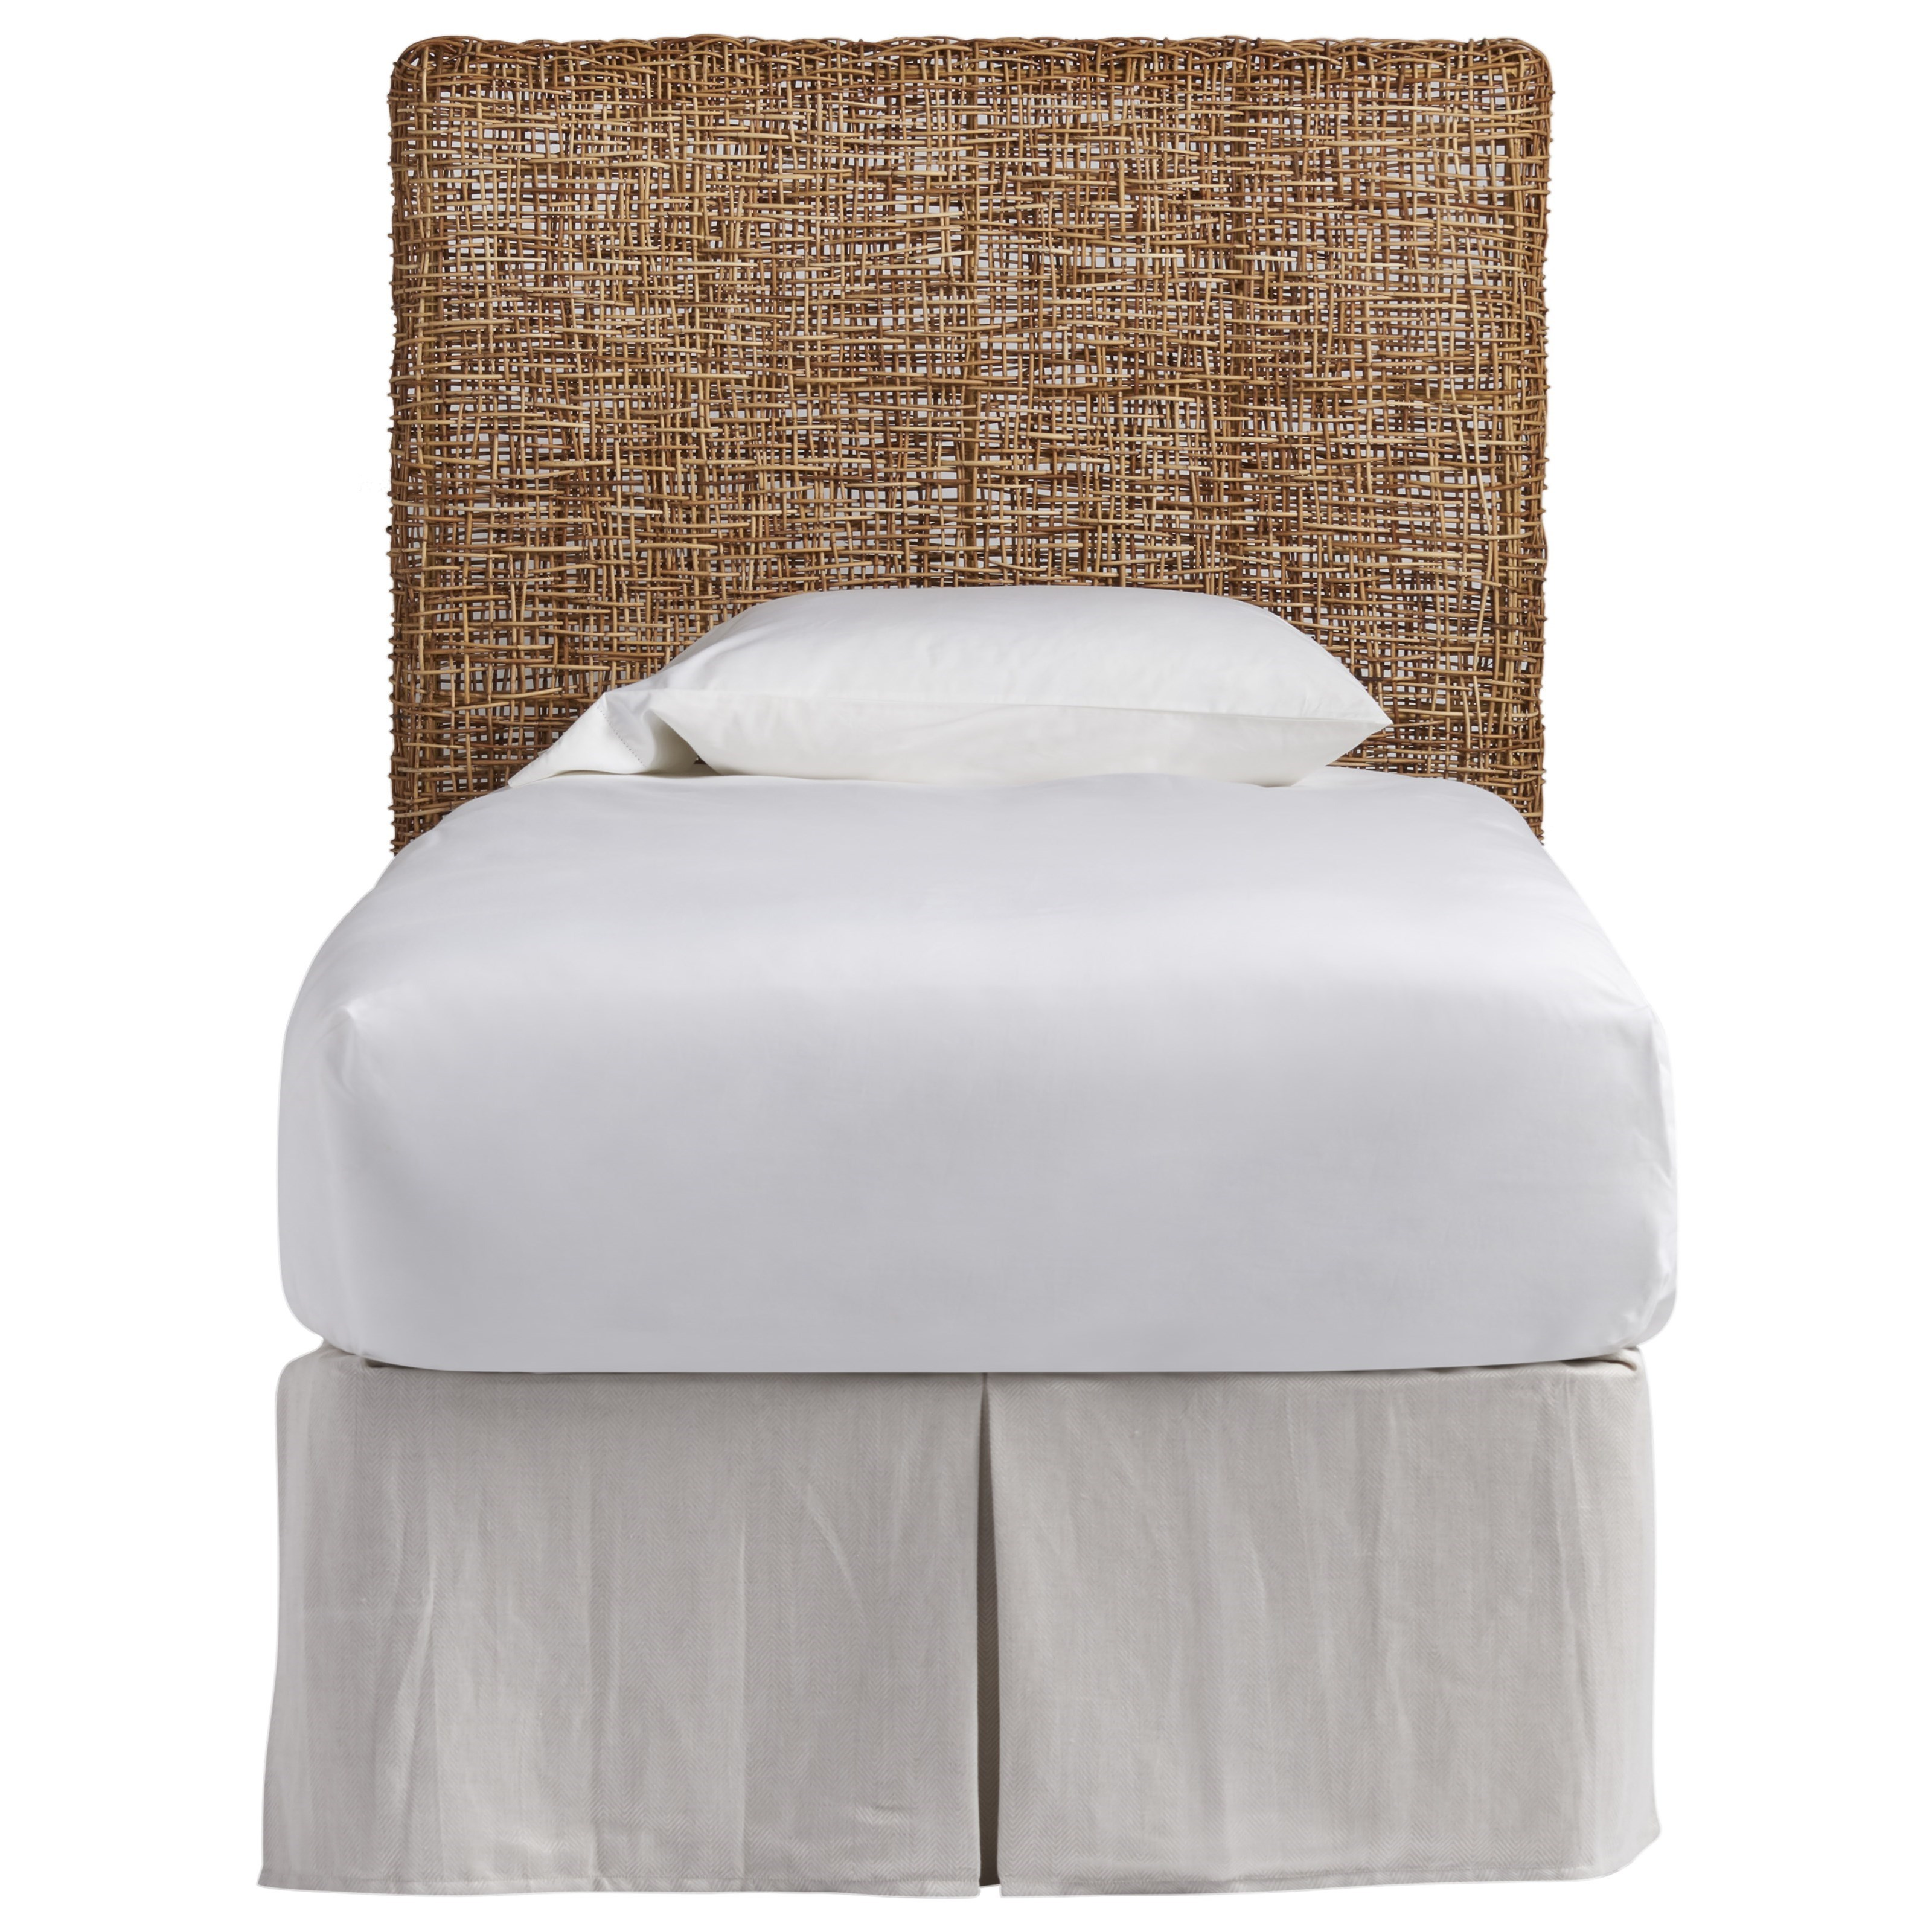 Coastal Living Home - Escape Twin Headboard by Universal at Baer's Furniture